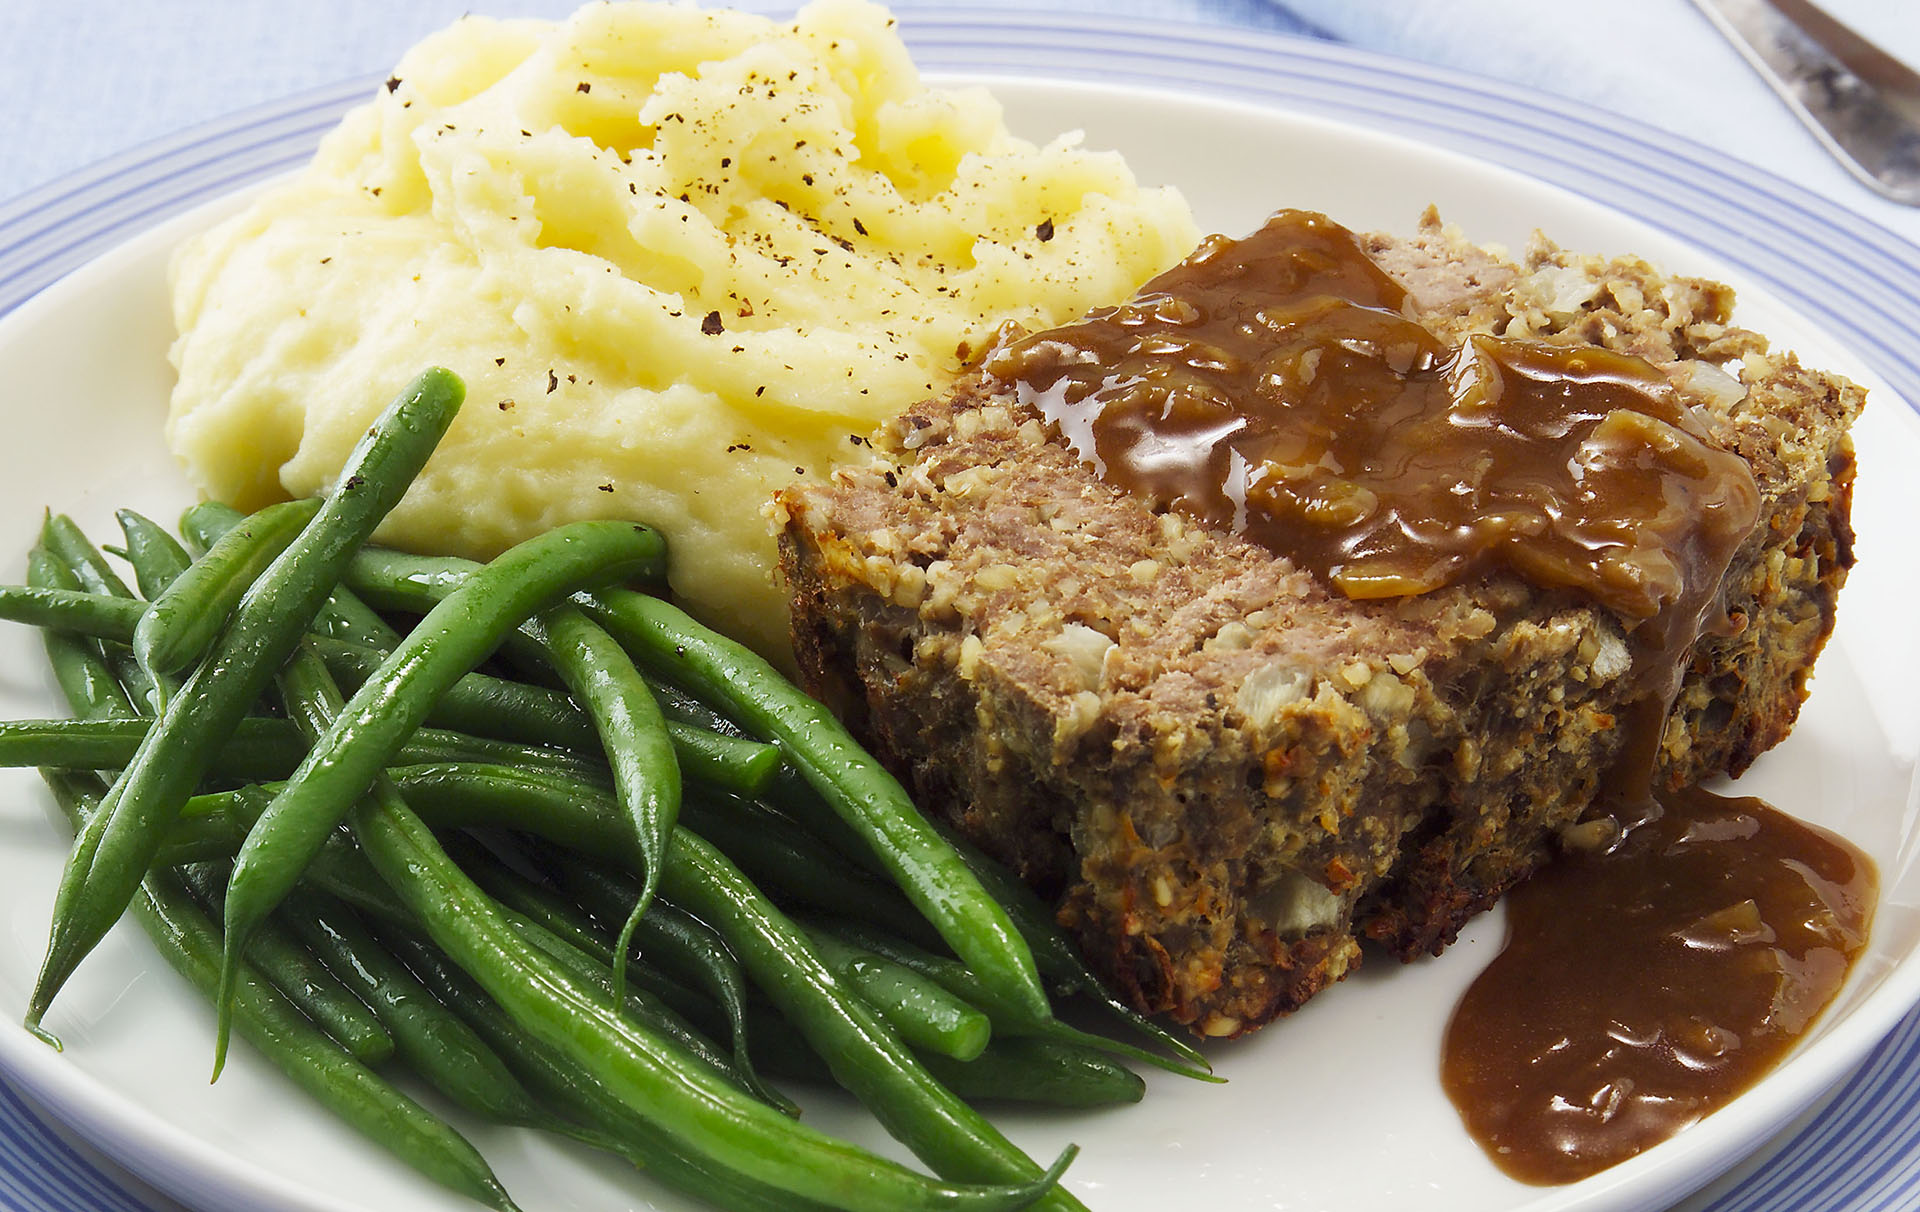 Tremendous Hairy Bikers Meatloaf Recipe With Gravy Dinner Recipes Goodtoknow Personalised Birthday Cards Cominlily Jamesorg